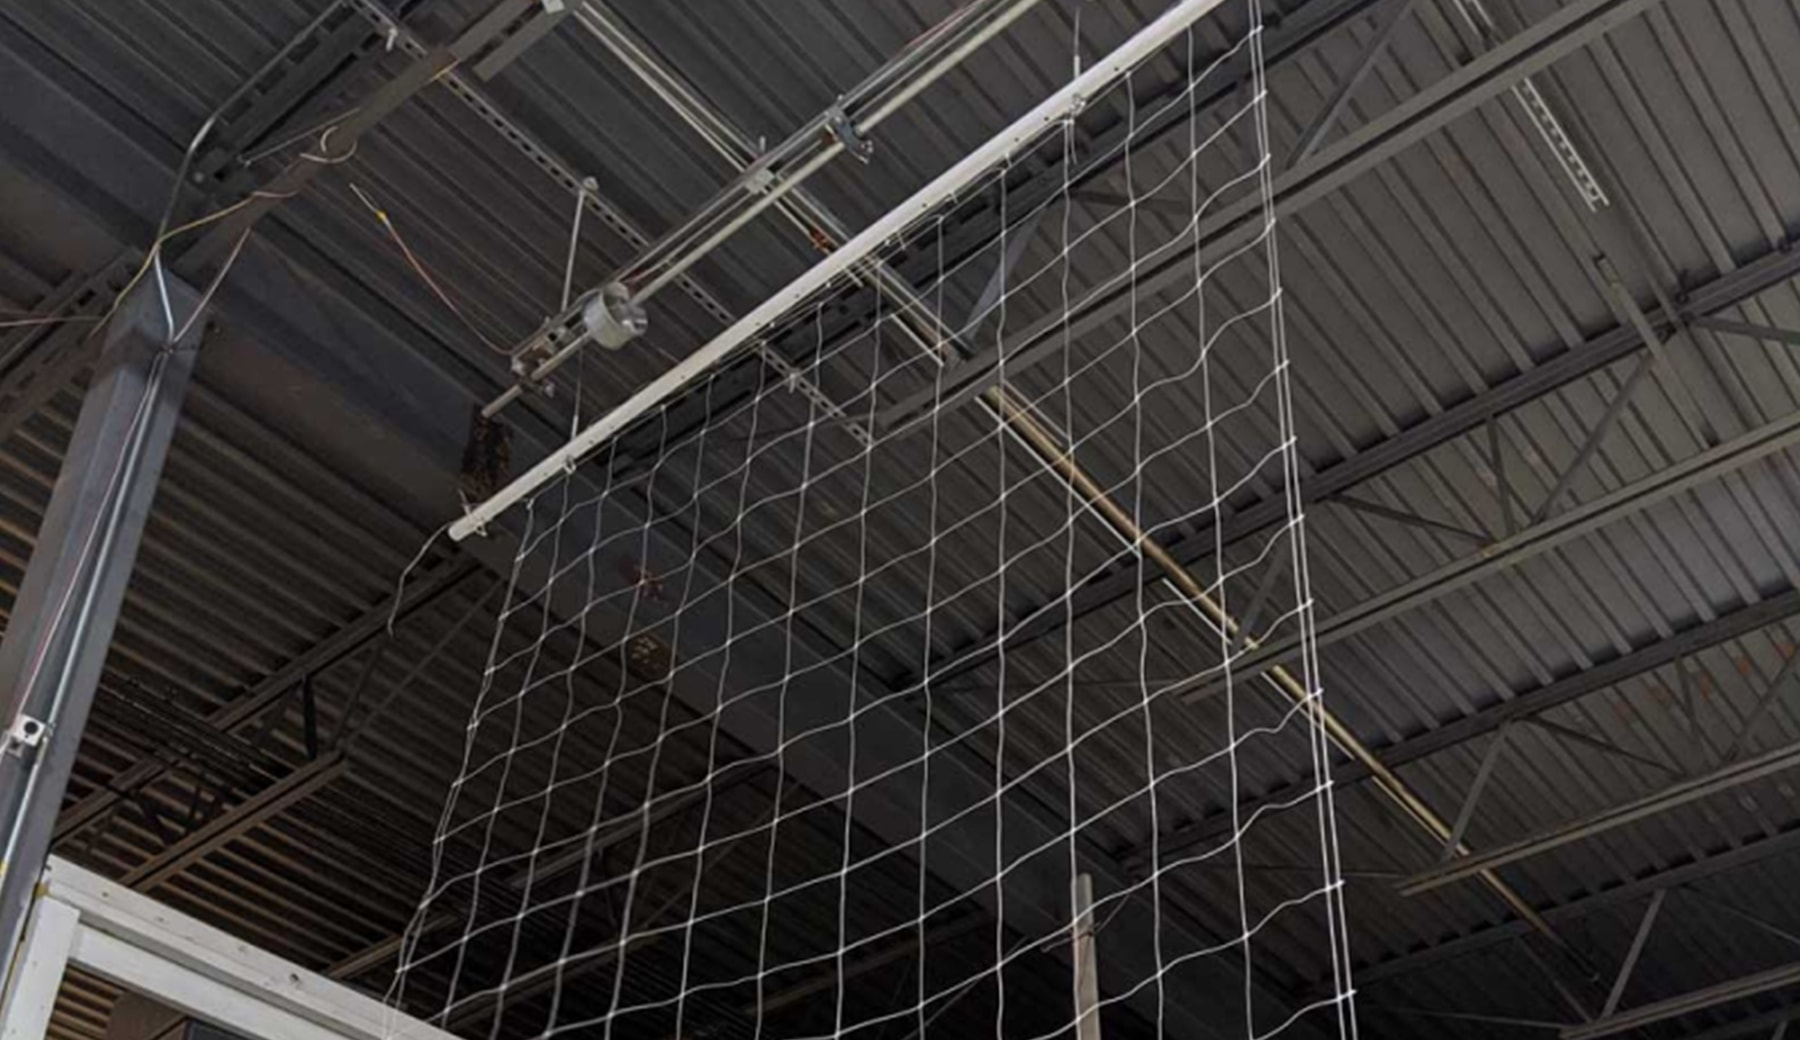 close-up of overhead cannabis drying net